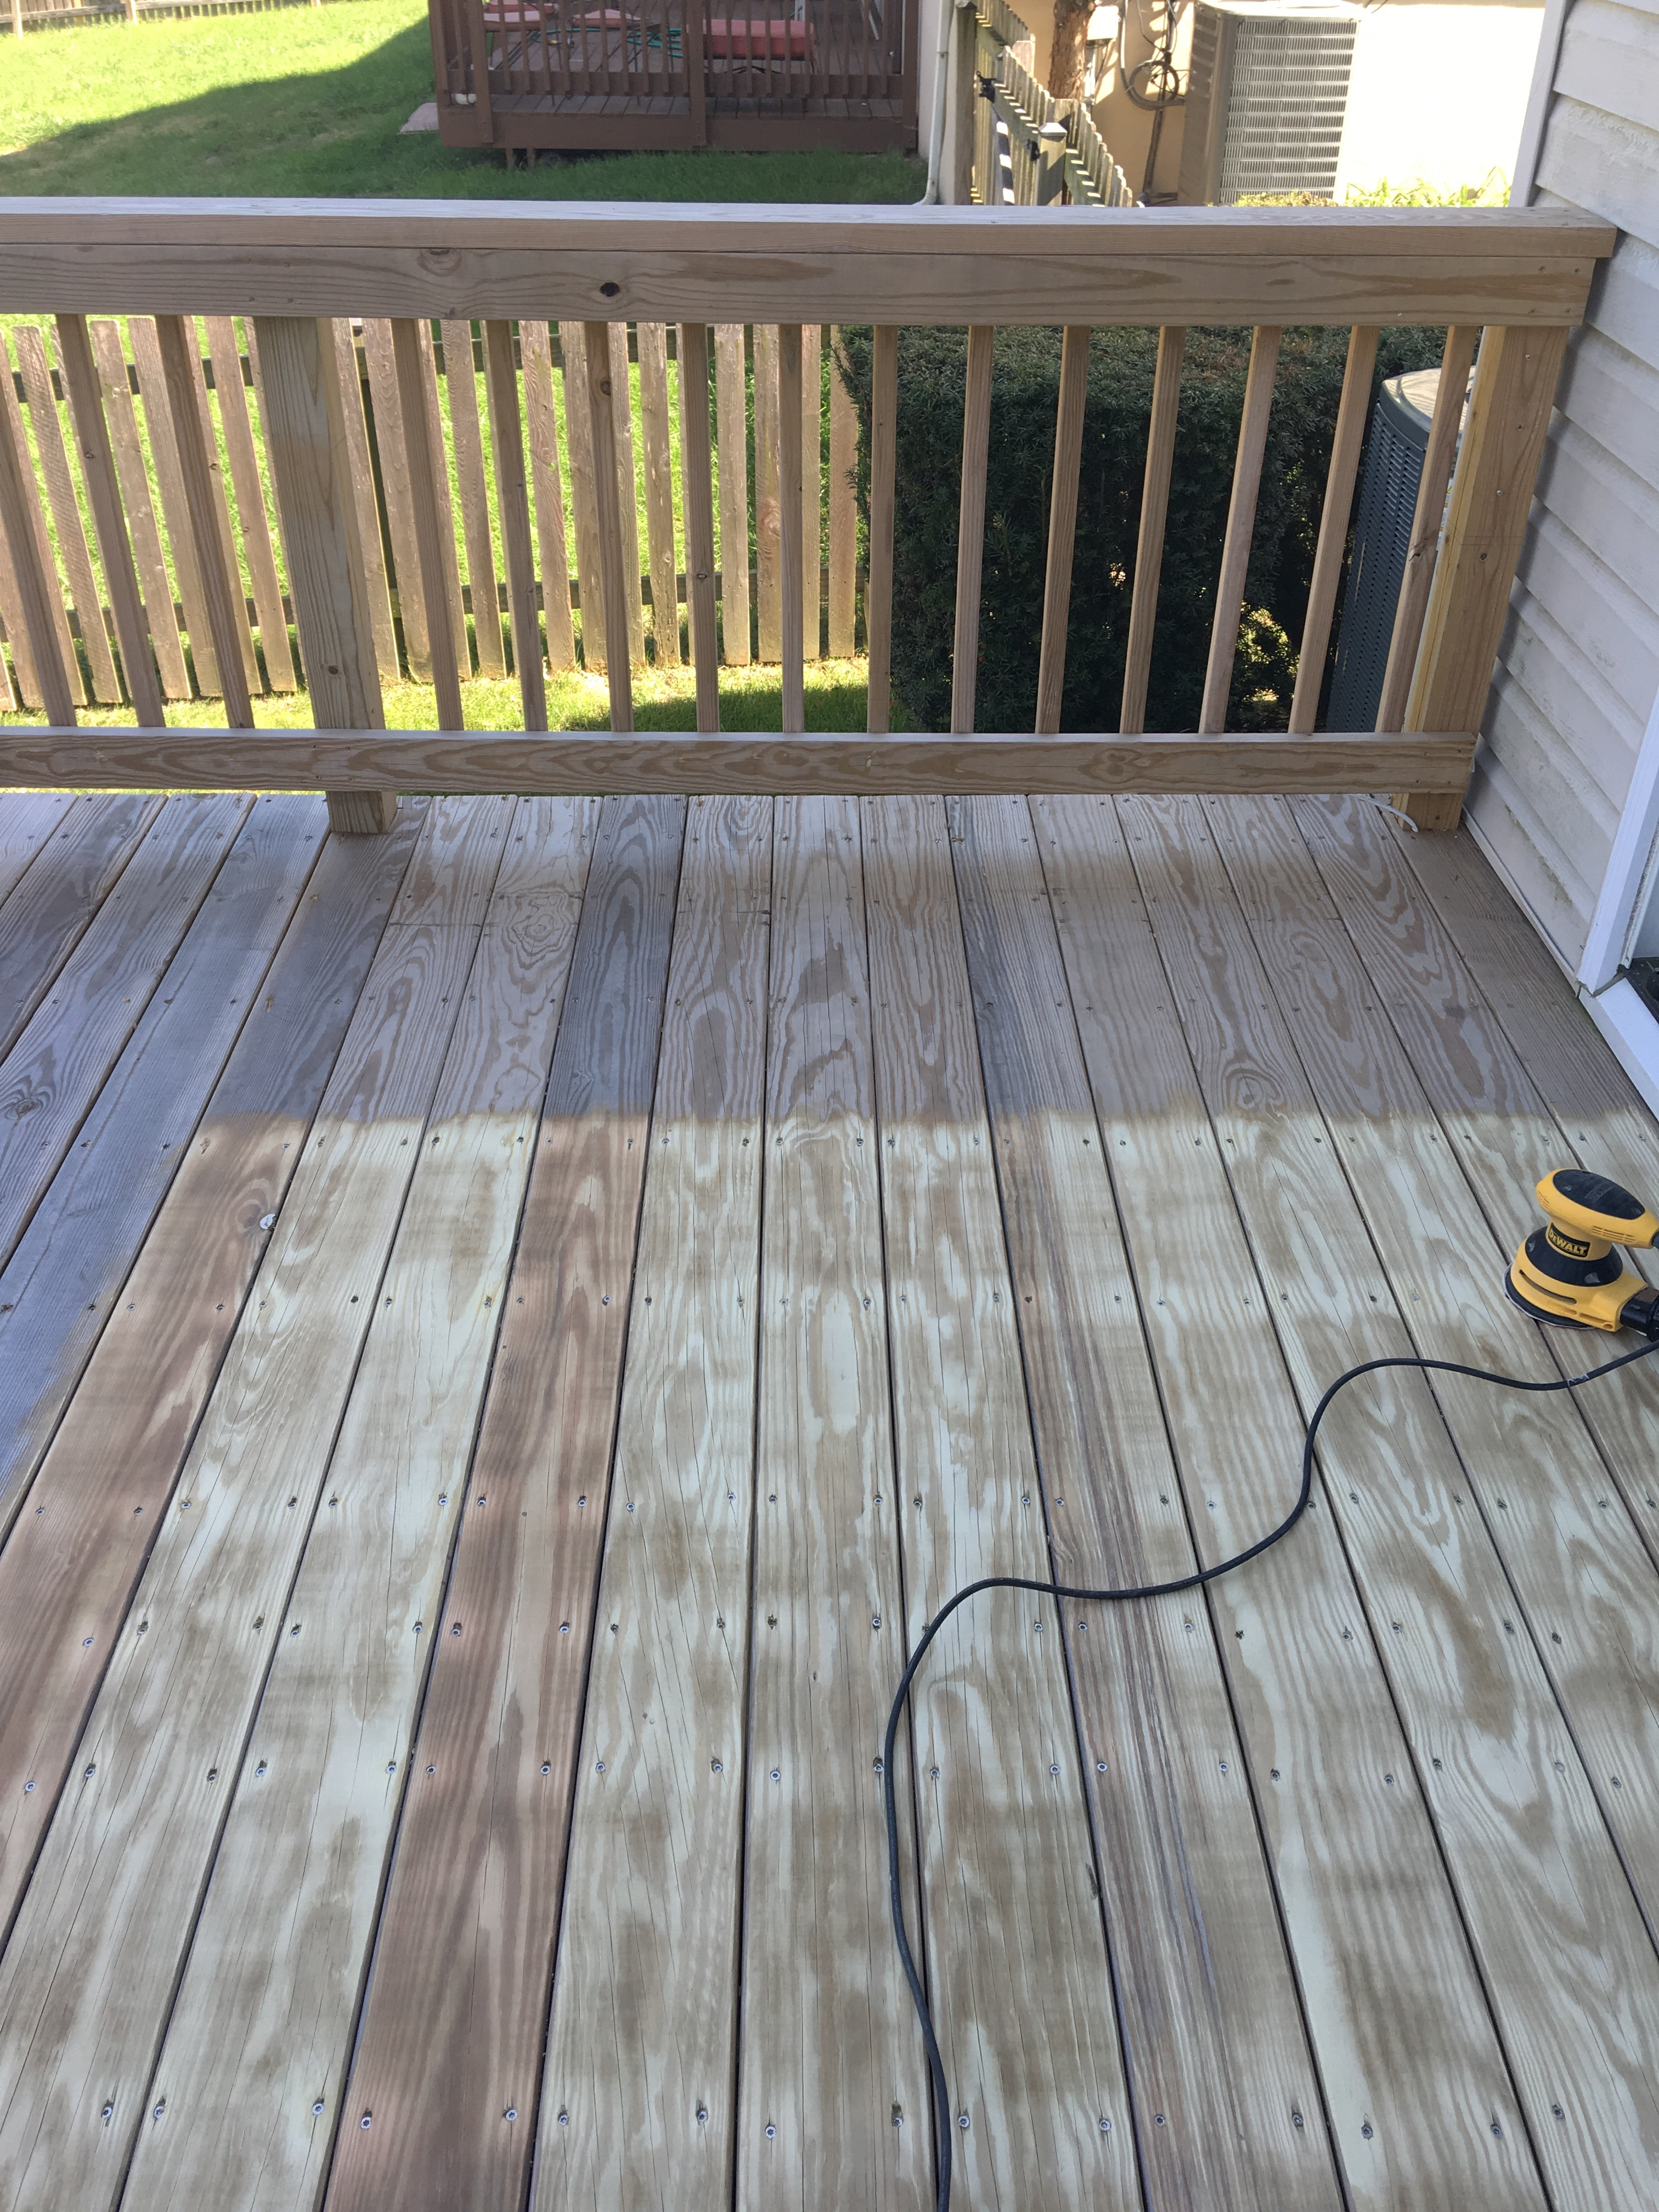 1 Year Old Deck Prep For Stain Deck Cleaning Questions